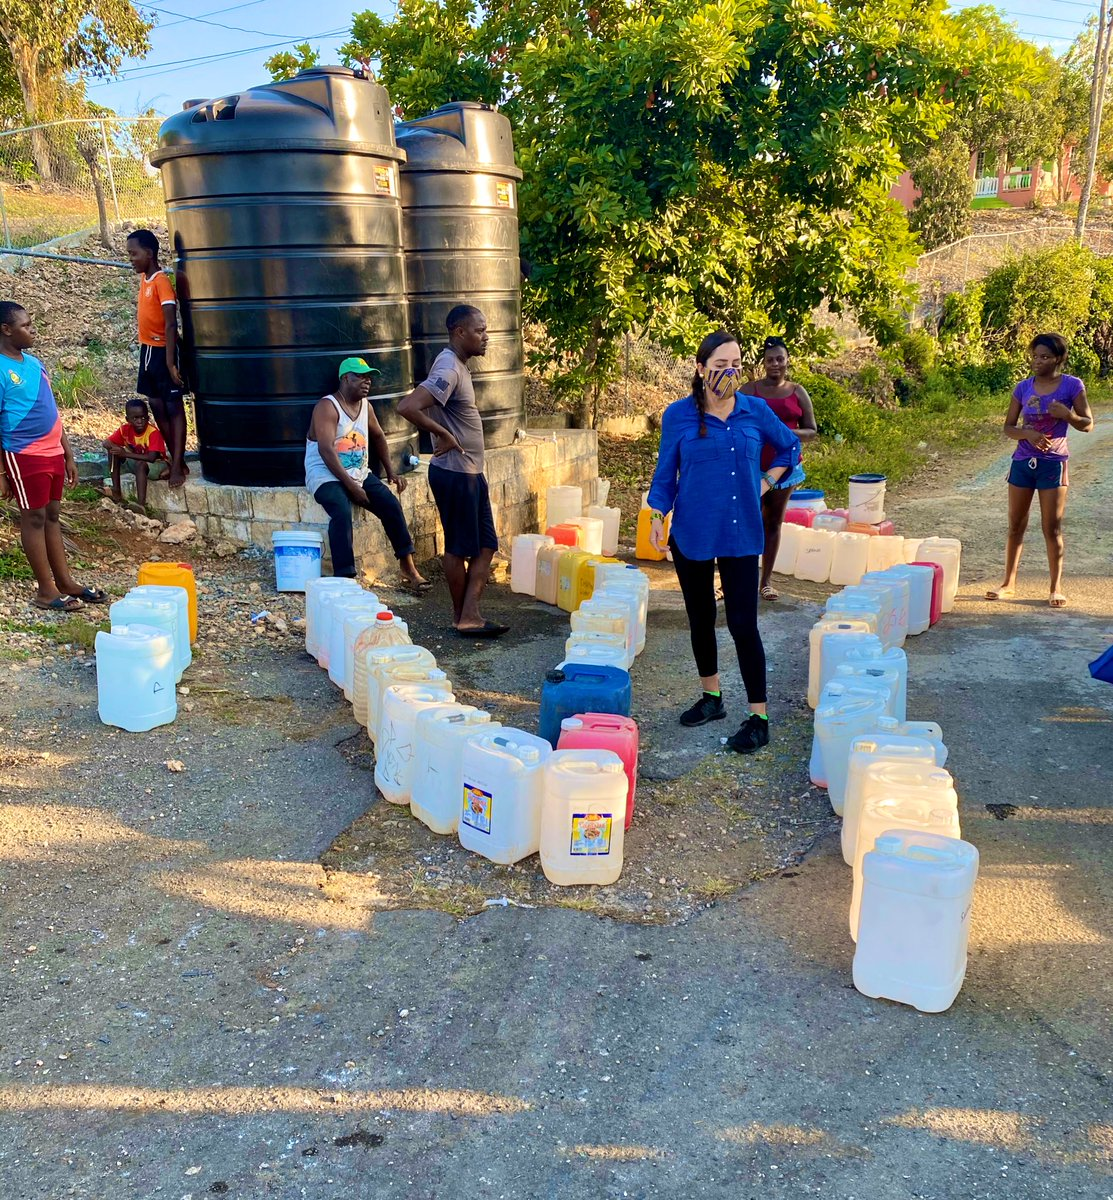 We also delivered much need water to #Commodore in my #EastPortland Thx to the #GOJ in their efforts to fight the #COVID19 crisis #WashYourHands #TanAYuhYaad #StayHome pic.twitter.com/HQXP9DSQYf